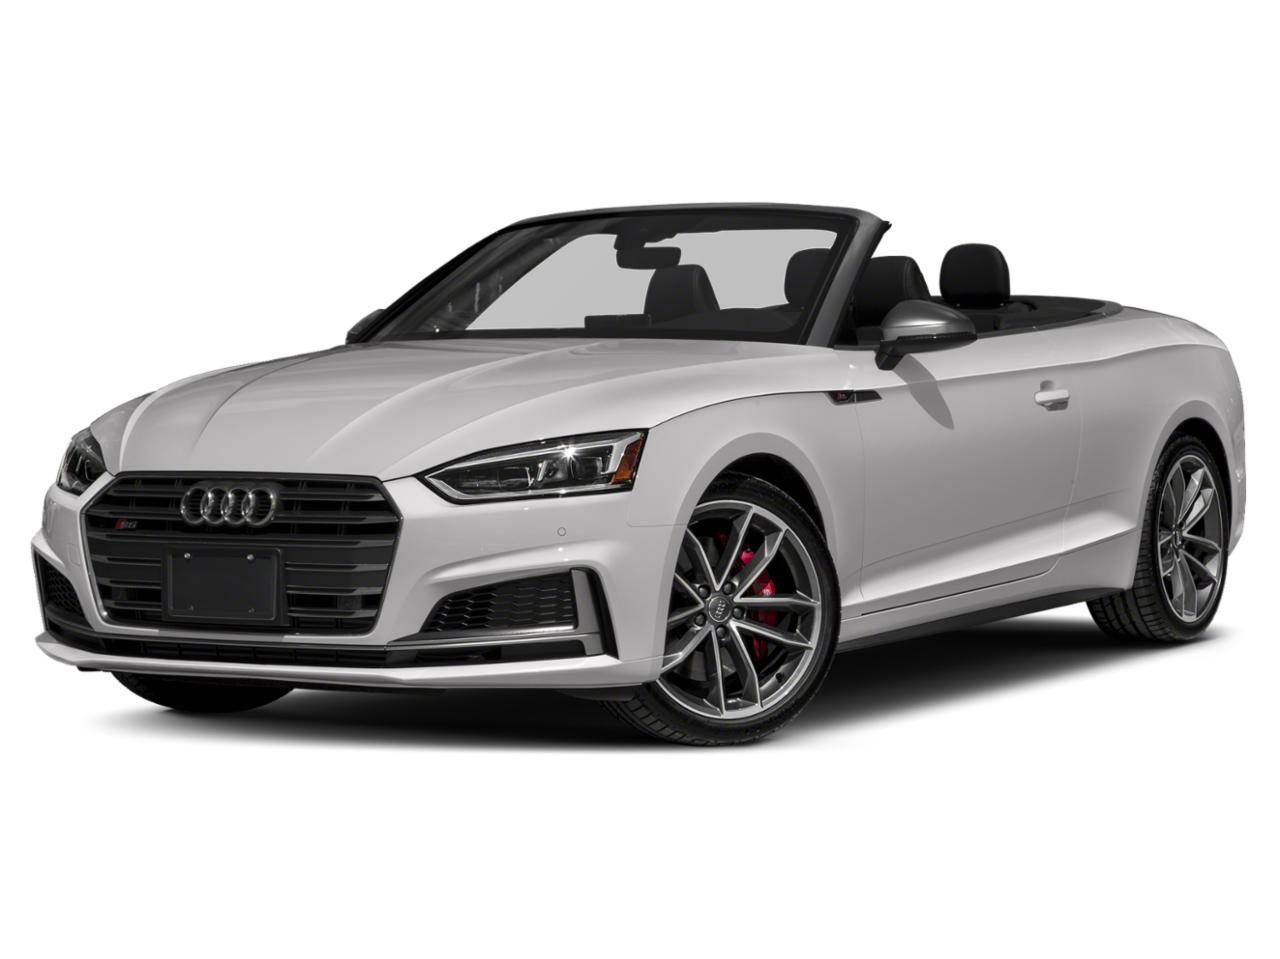 2018 Audi S5 Cabriolet Vehicle Photo in Allentown, PA 18103